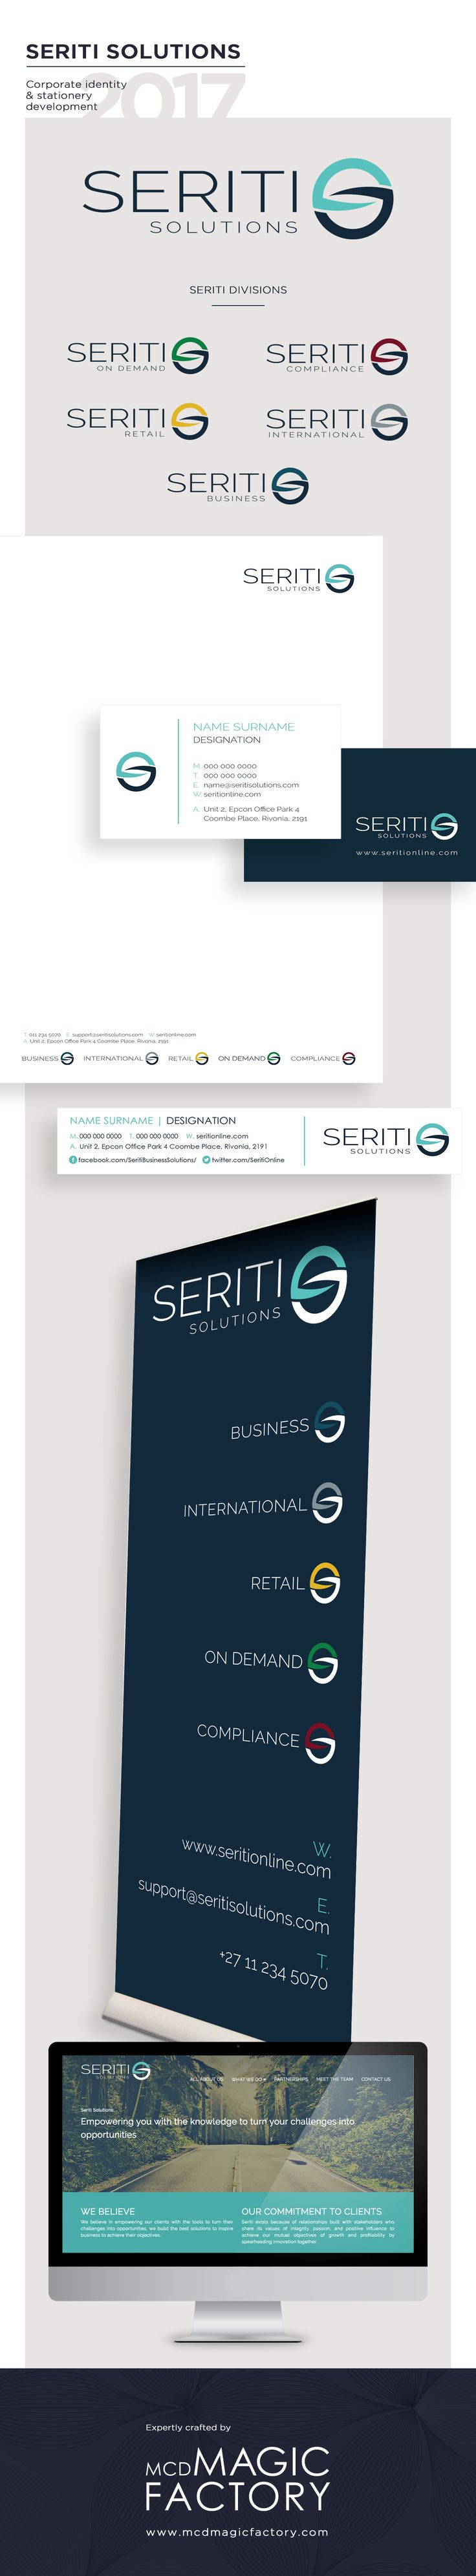 Client: Seriti Solutions | Year: 2017 | New corporate identity rolled out in business cards, e-signatures, PowerPoint templates, desktop backgrounds and letterheads. www.seritionline.com